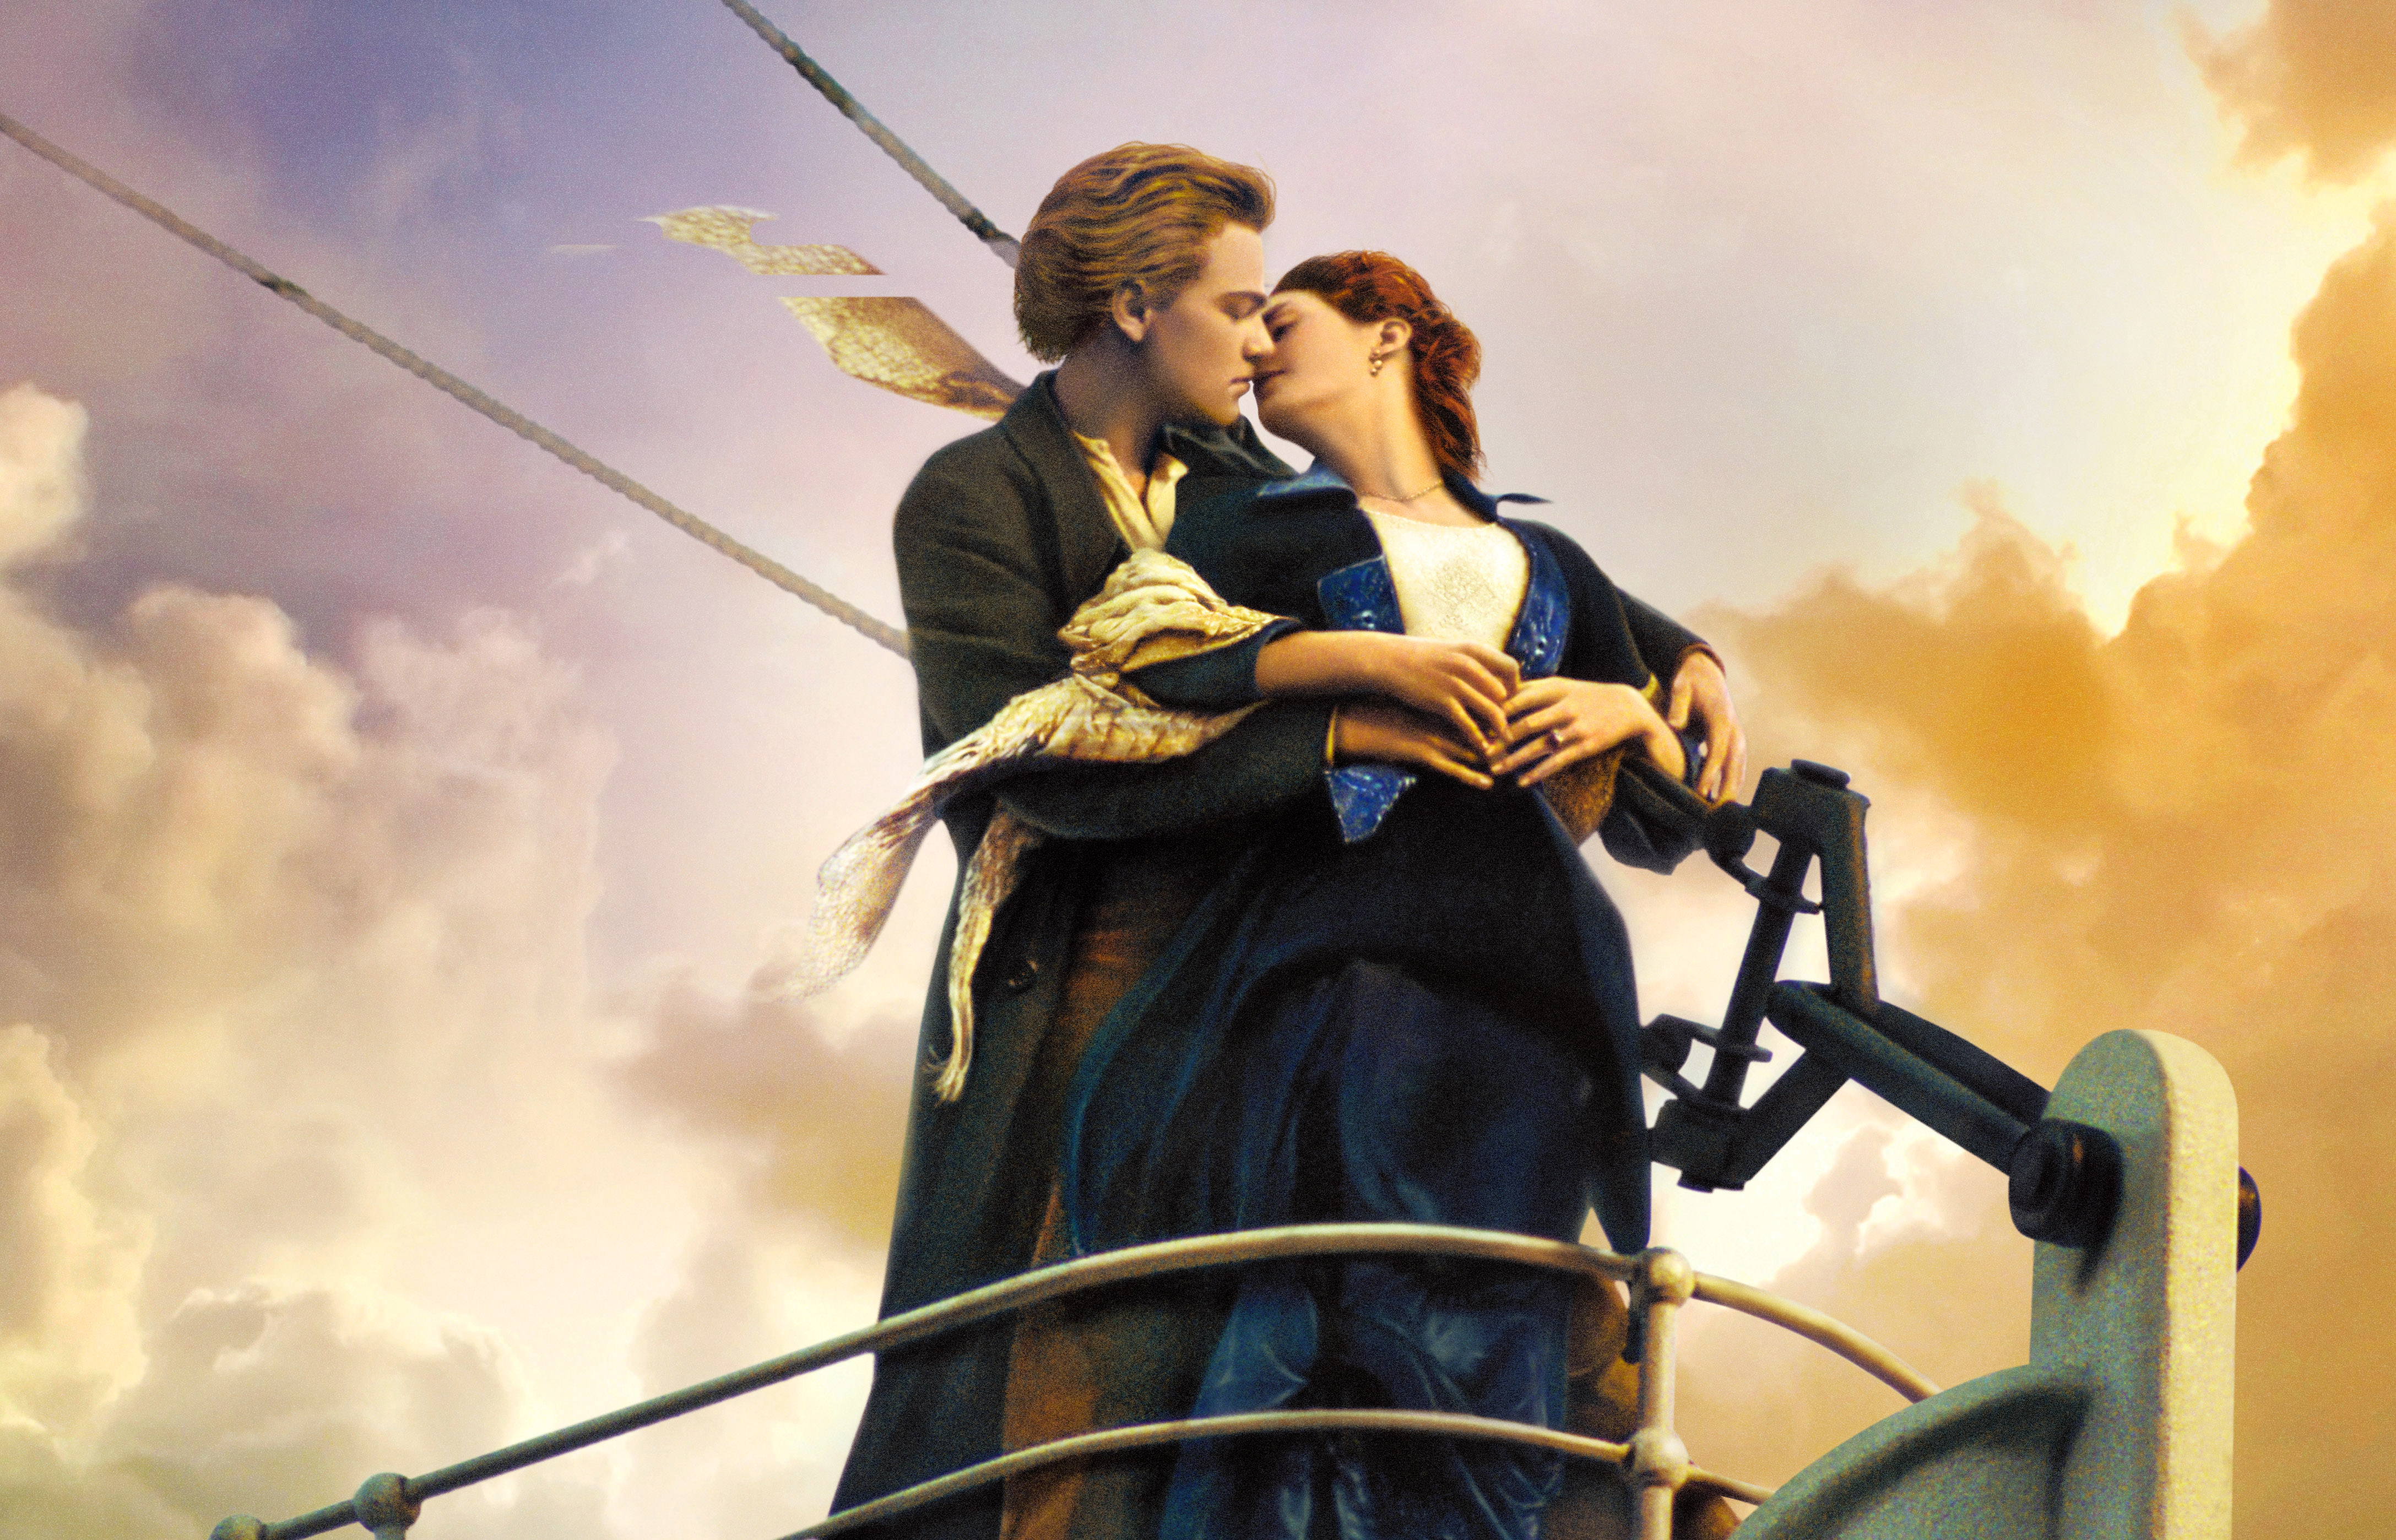 Titanic hd movies 4k wallpapers images backgrounds - 4k kiss wallpaper ...